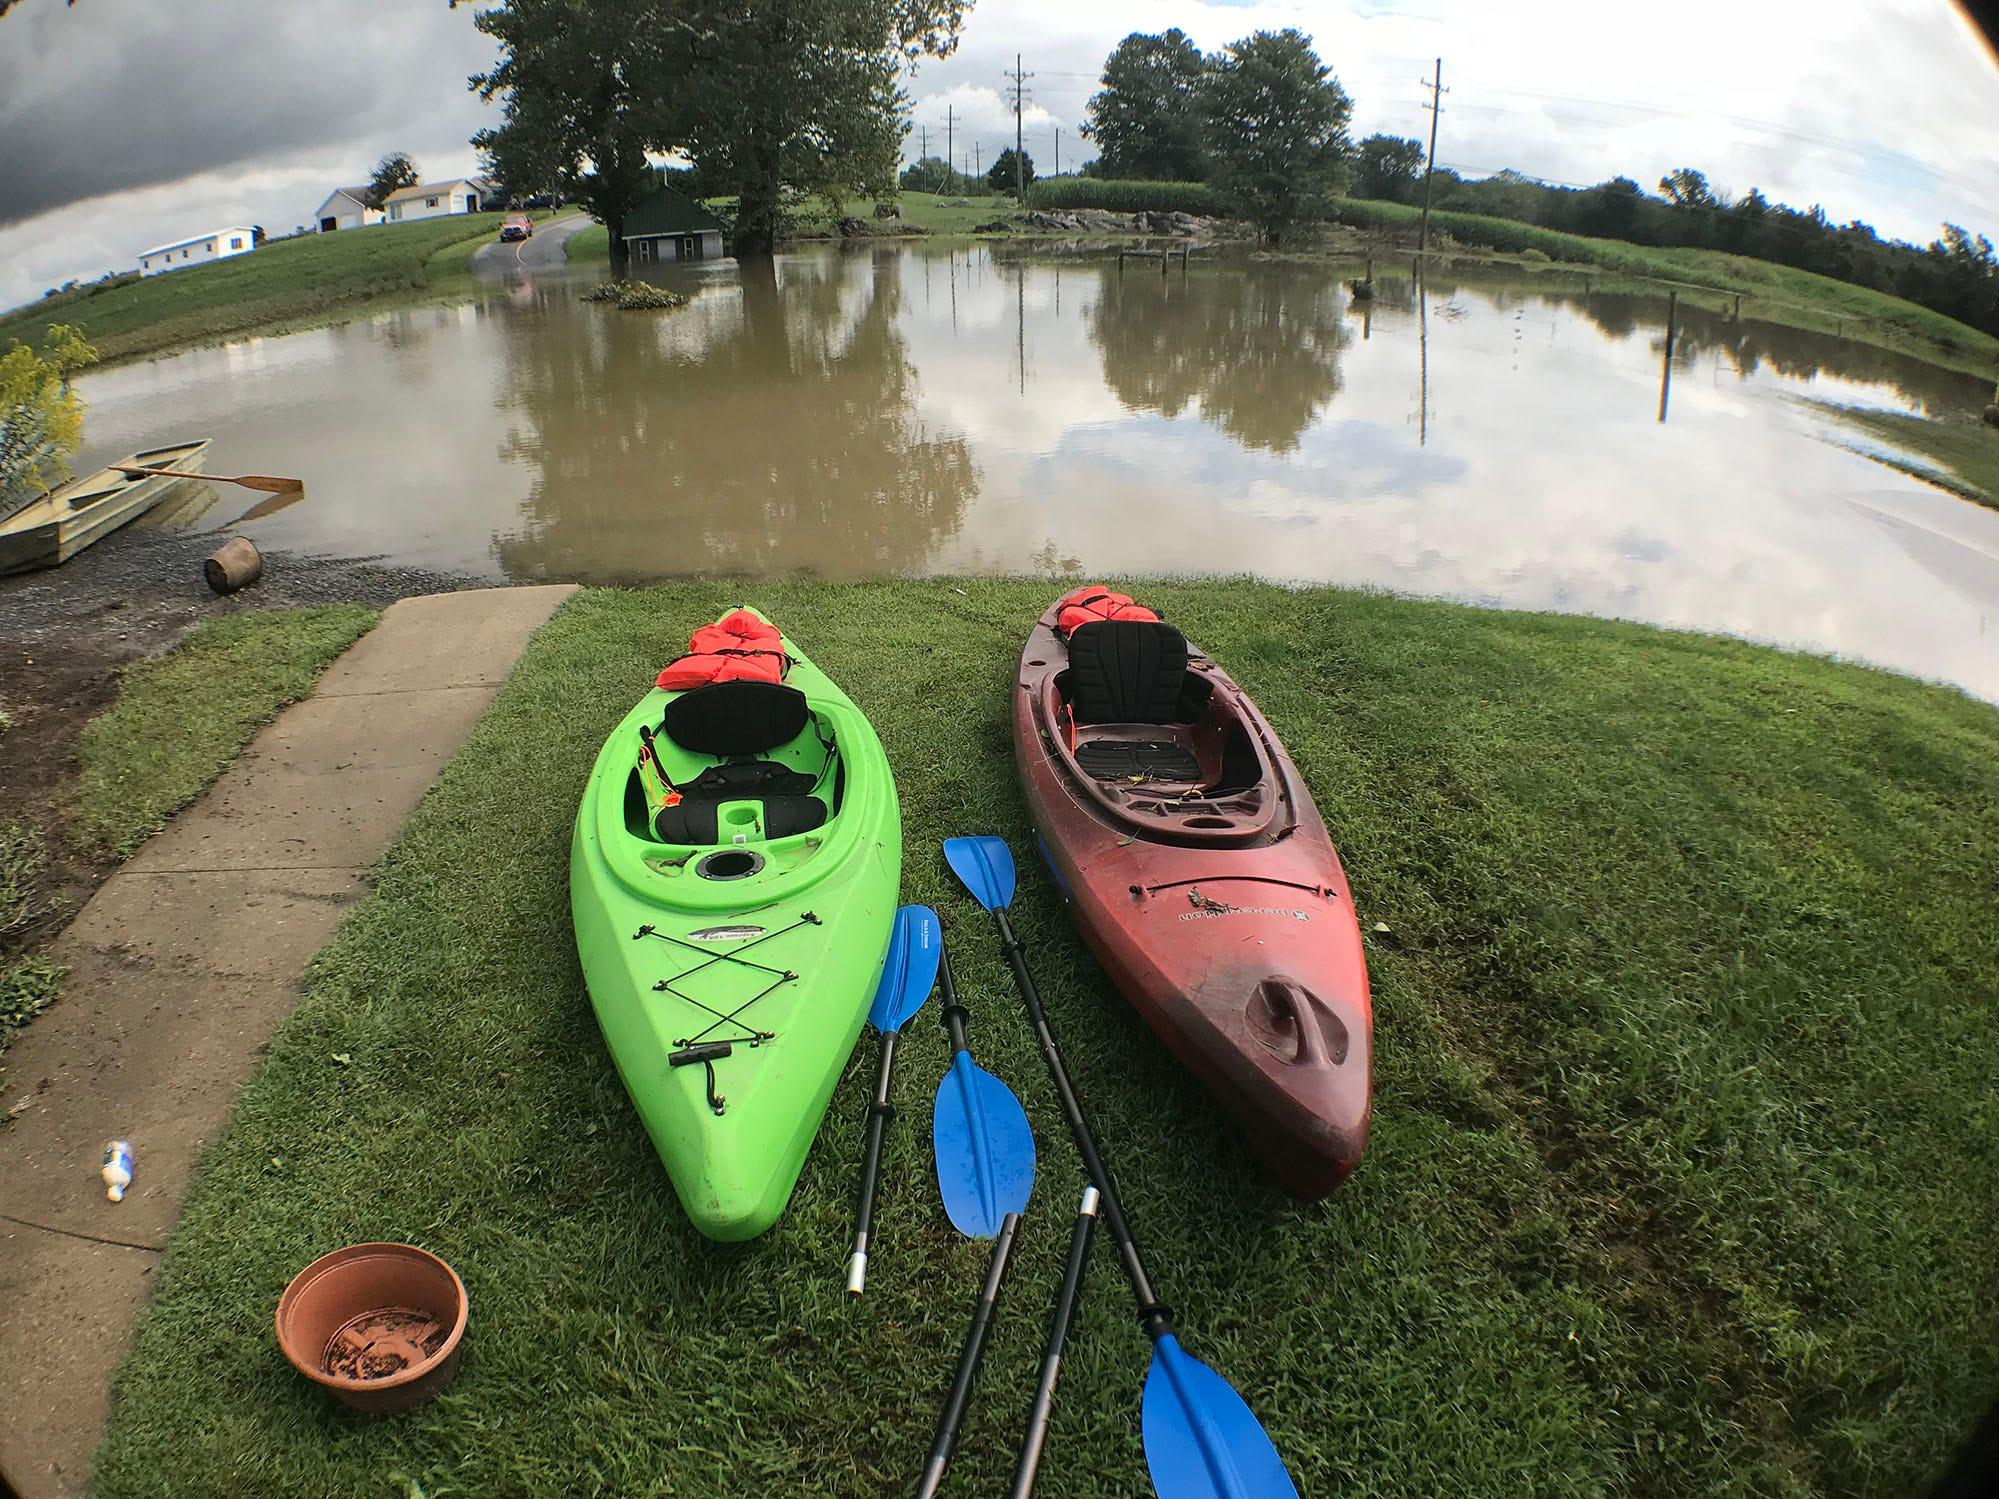 A road just beyond the kayaks pictured is flooded at Shimpstown Road, Mercersburg. A bridge was destroyed and there is street flooding and road closings around Shimpstown Road in the Mercersburg area on Thursday, September 13, 2018.